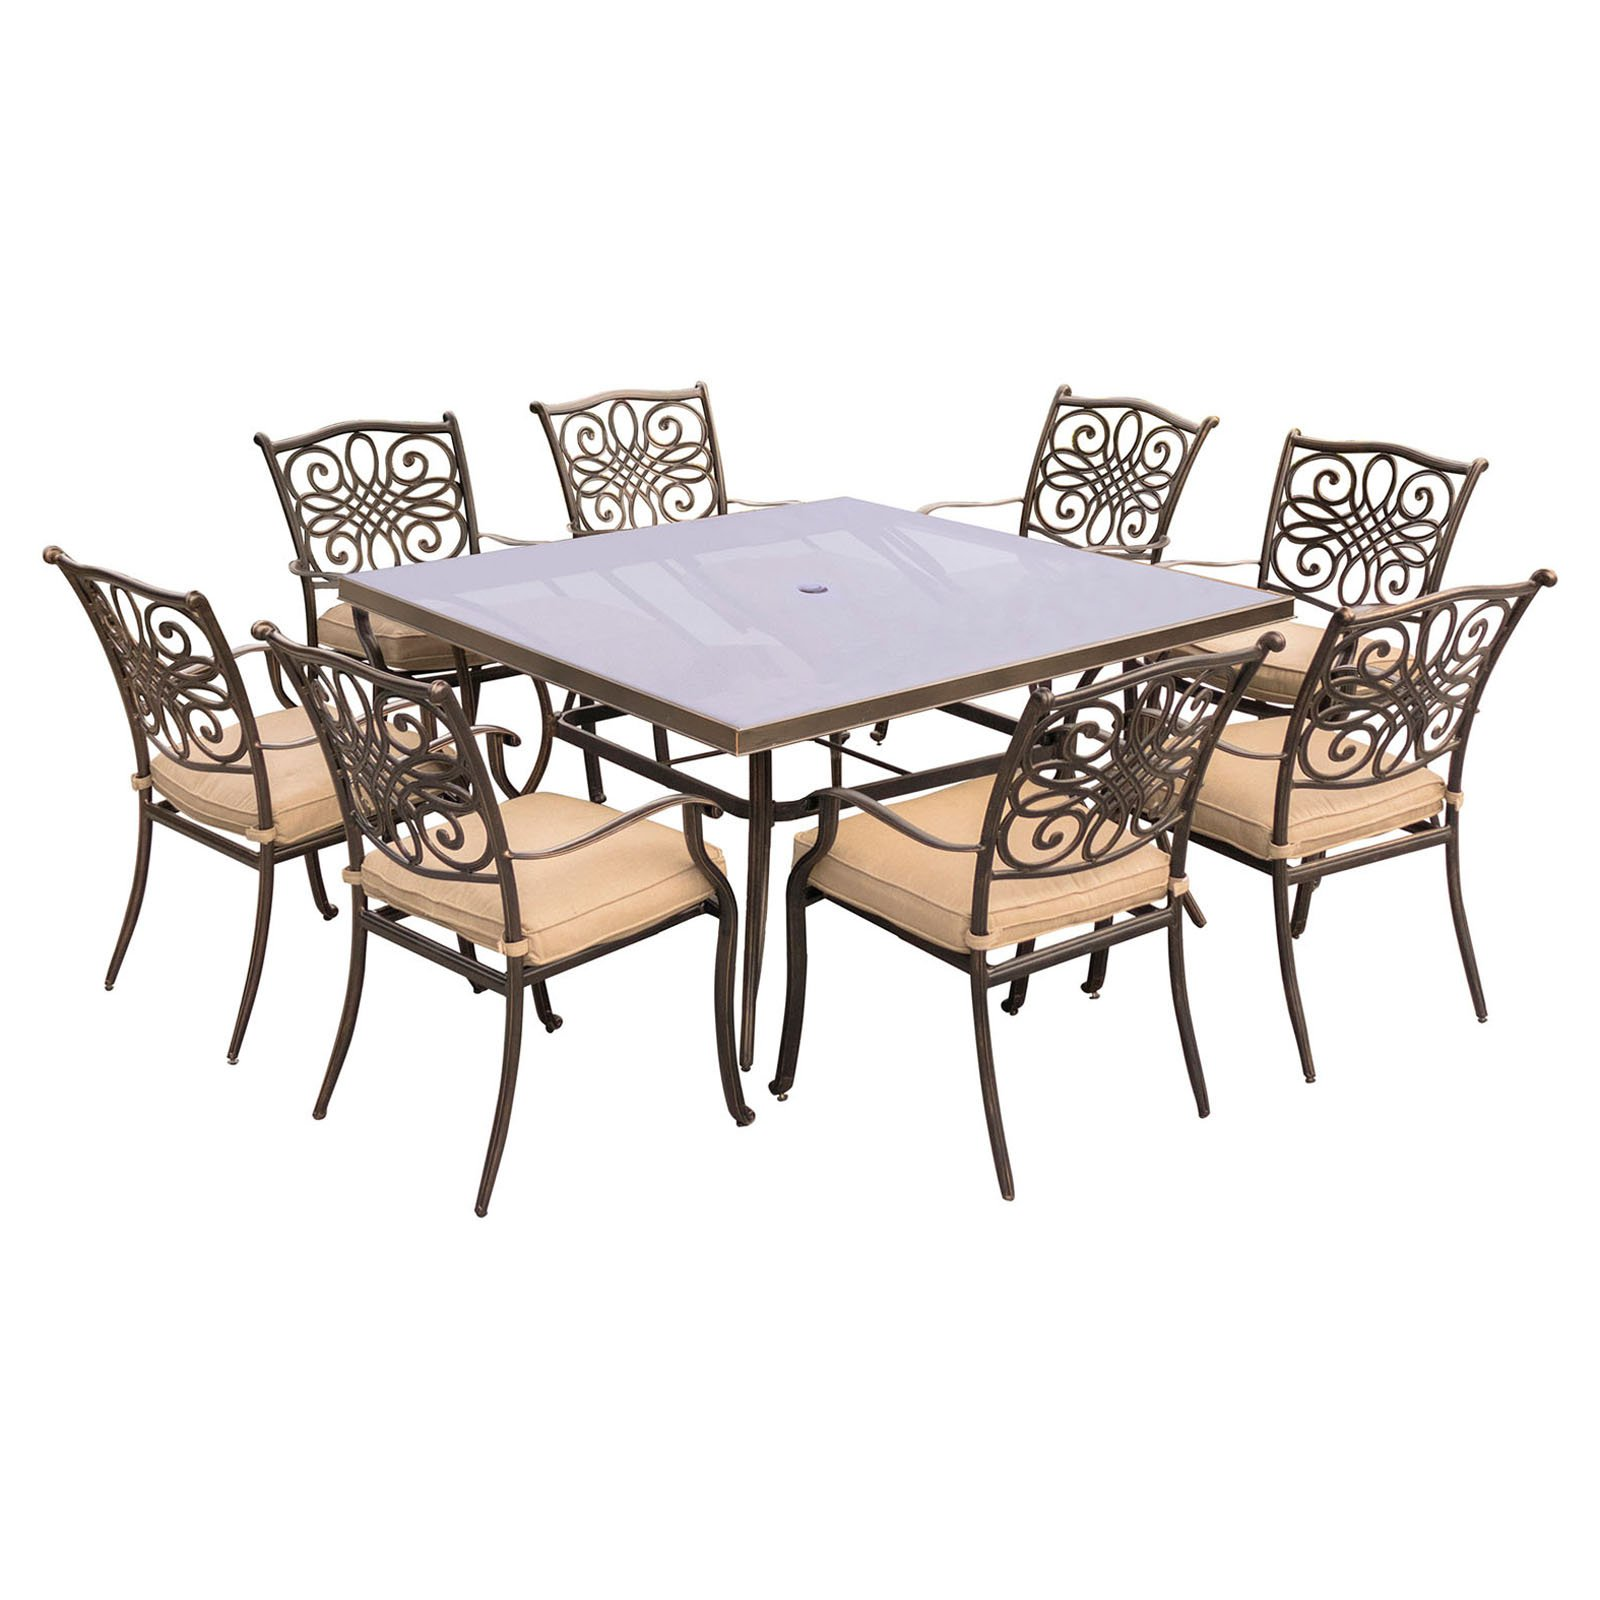 """Hanover Outdoor Traditions 9-Piece Dining Set with 60"""" Square Glass-Top Table, 8 Stationary Chairs and Umbrella with Stand, Natural Oat"""